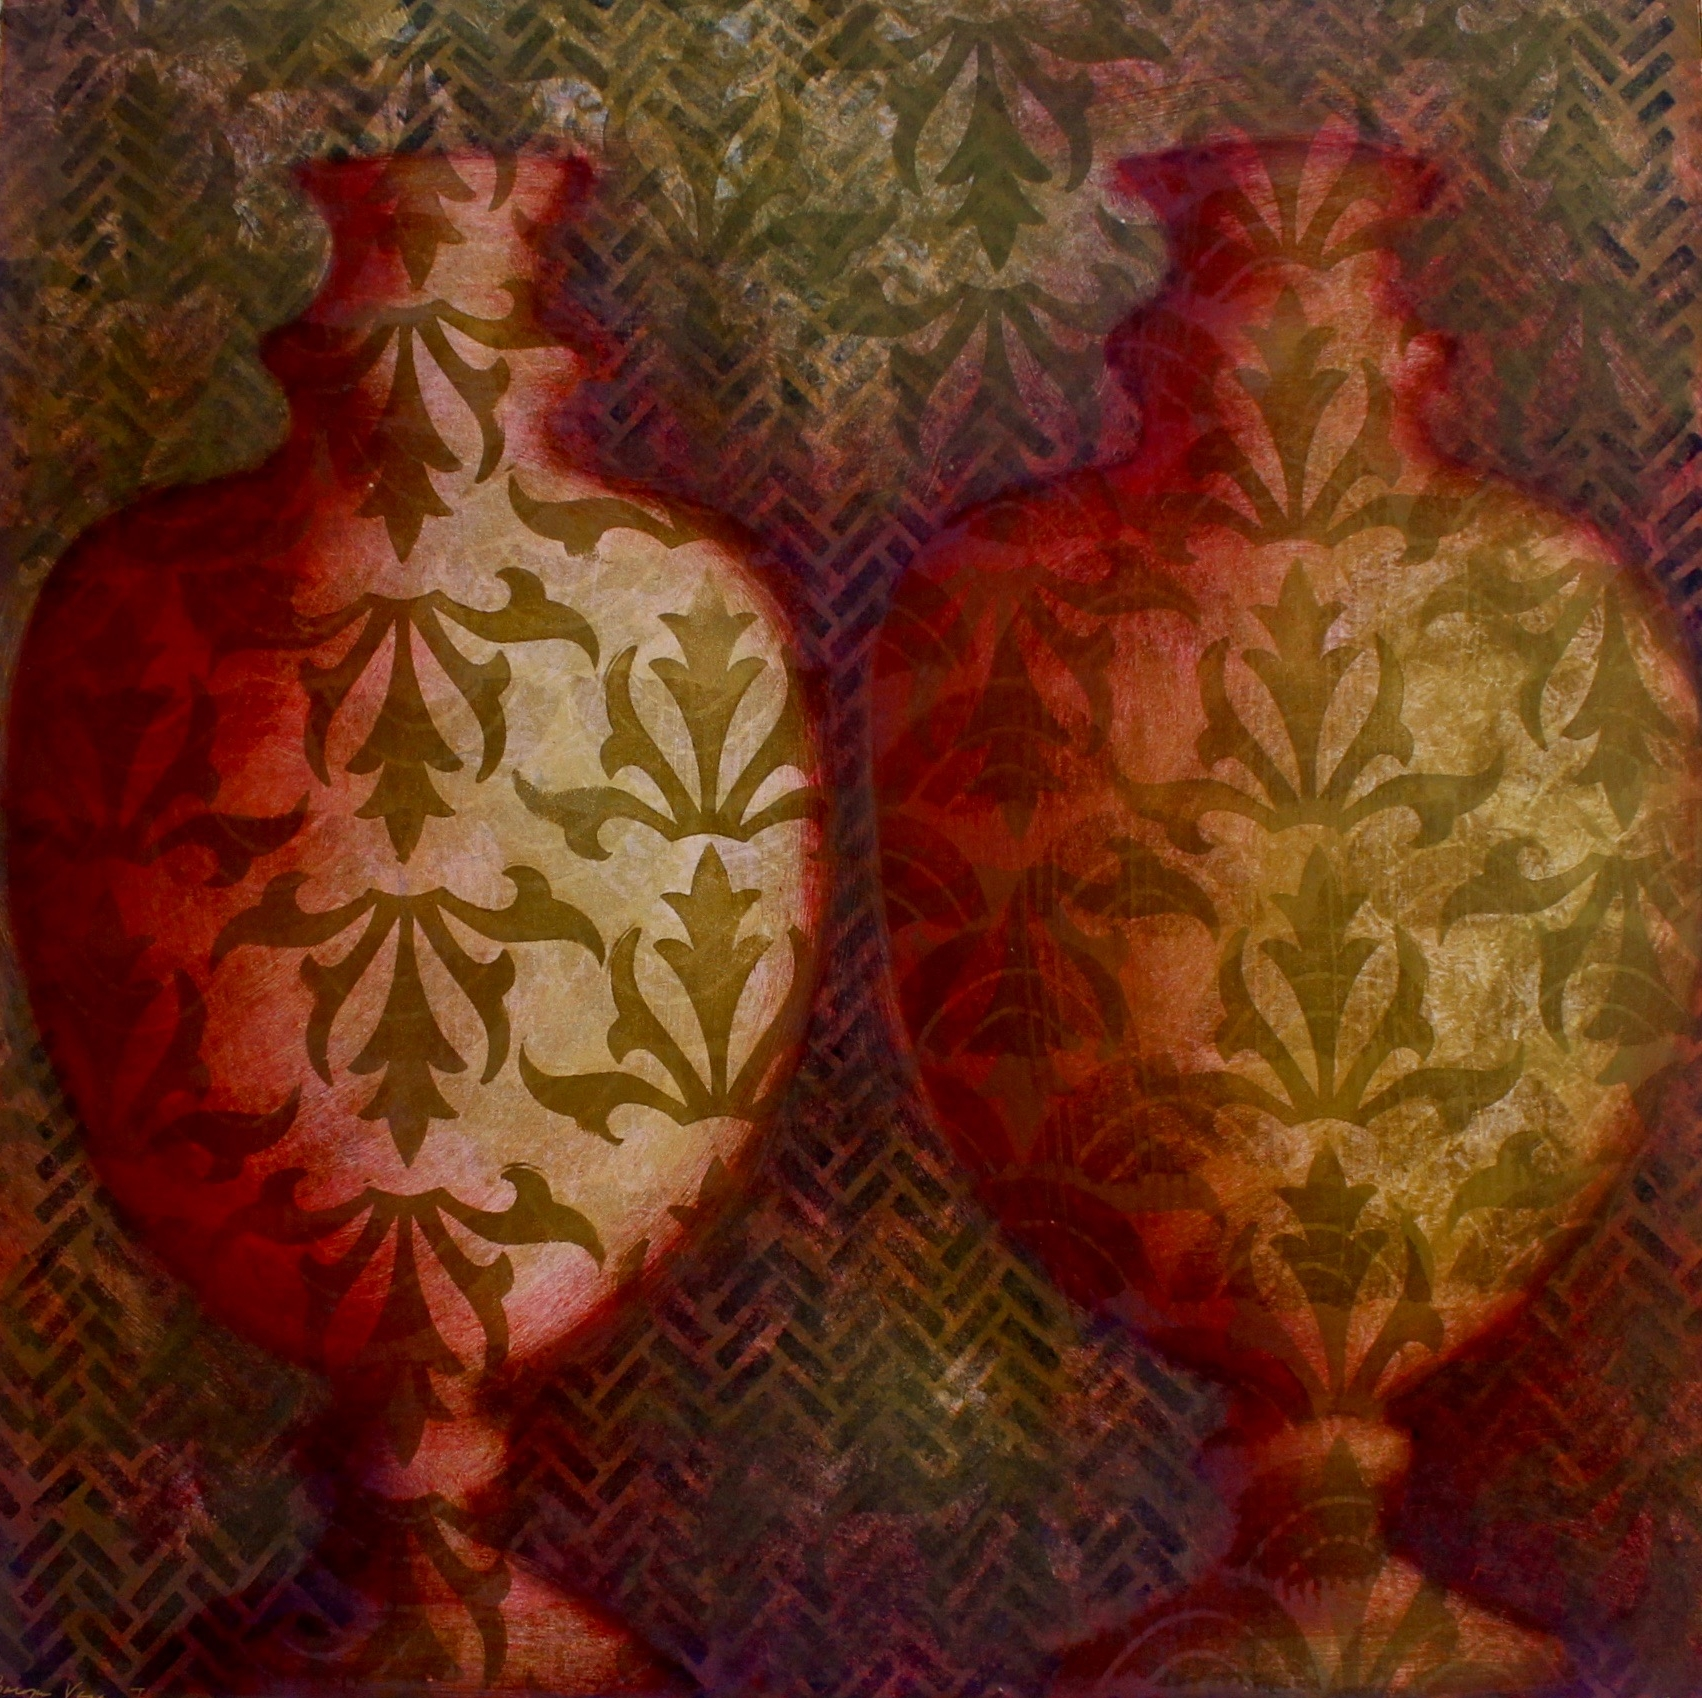 """Baroque Vases I"", Monotype print, 24x24 in."